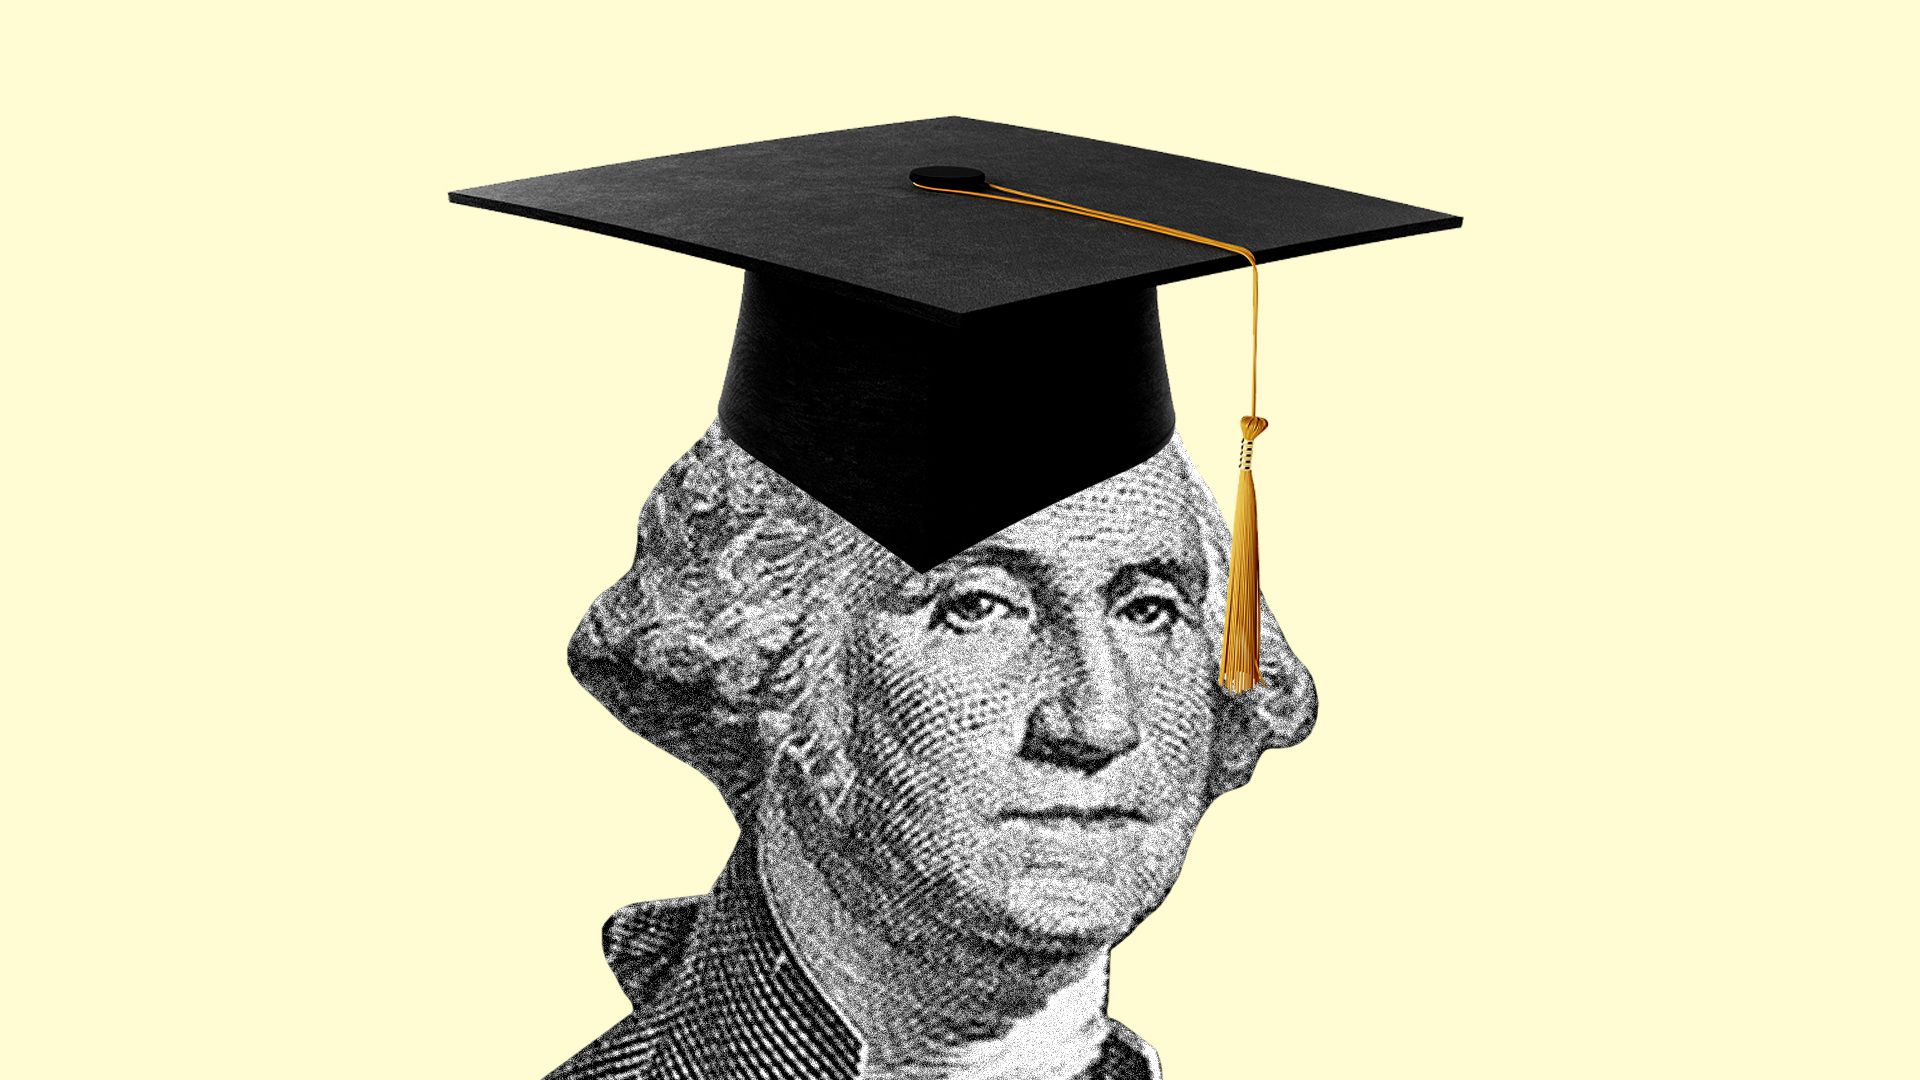 Illustration of George Washington wearing a graduation cap